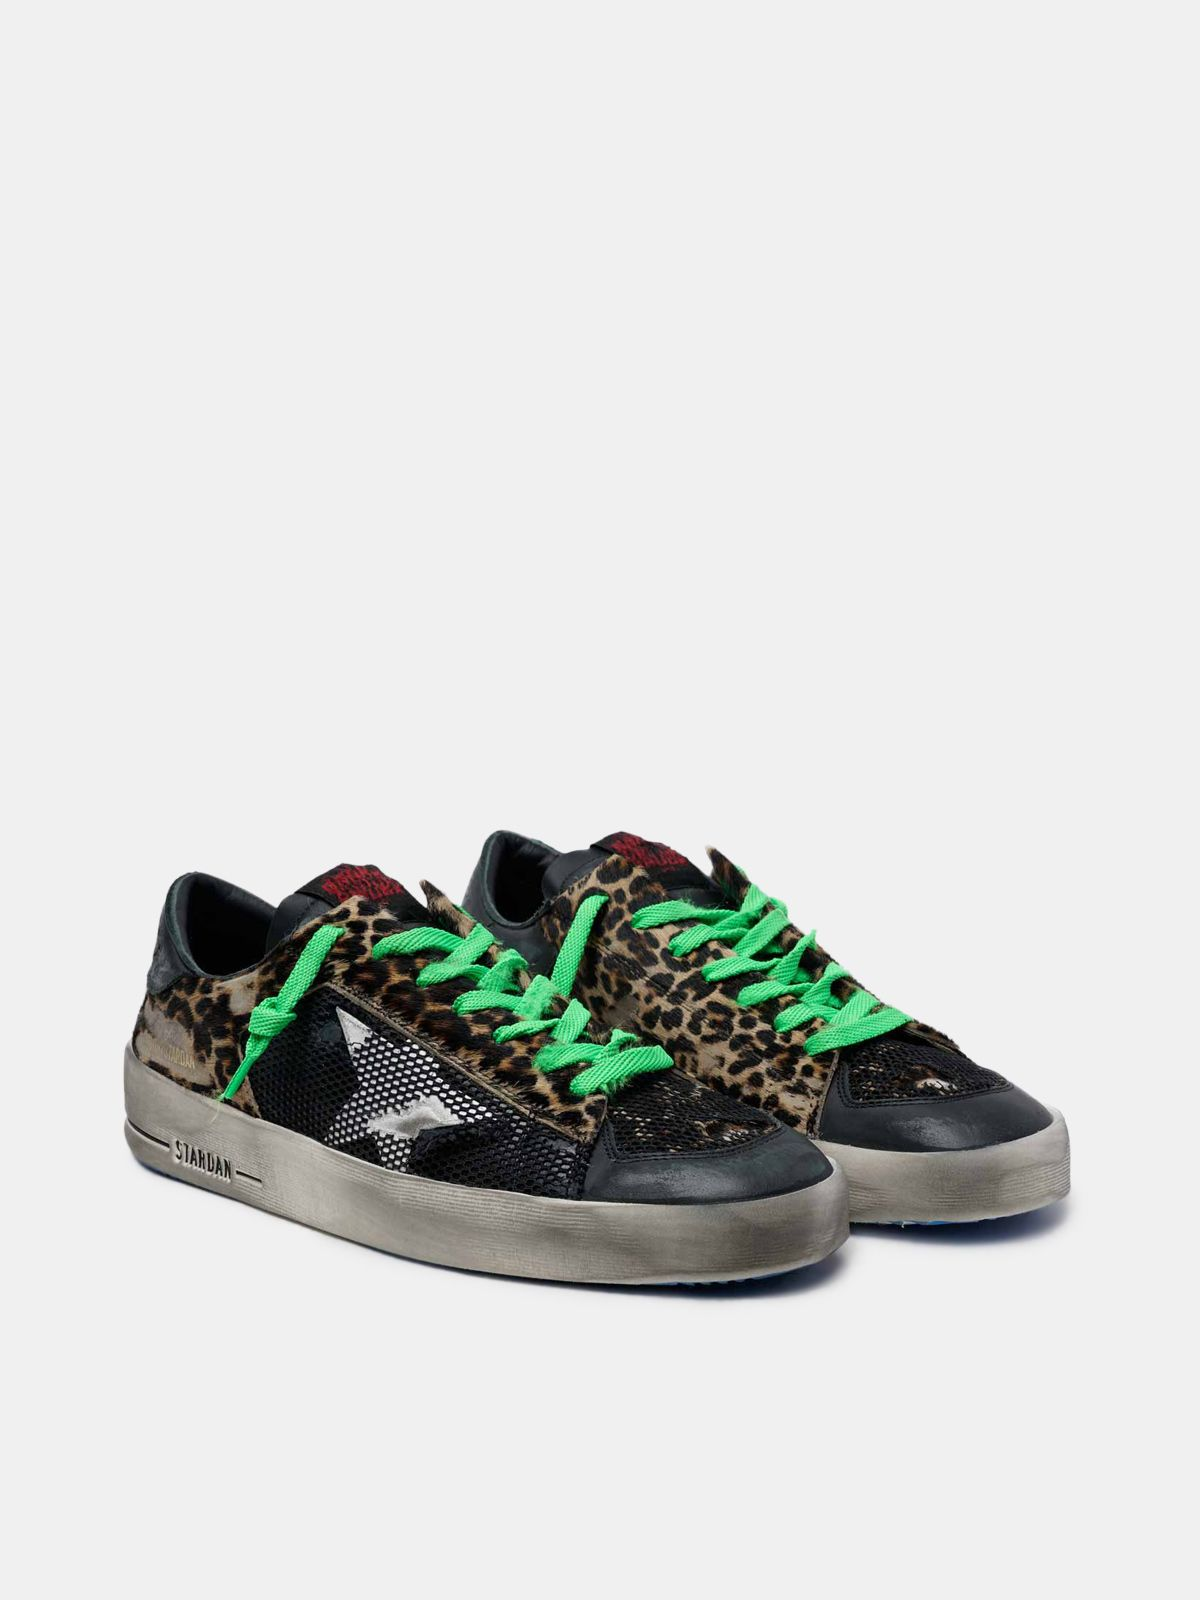 Golden Goose - Leopard print Stardan sneakers with green laces in